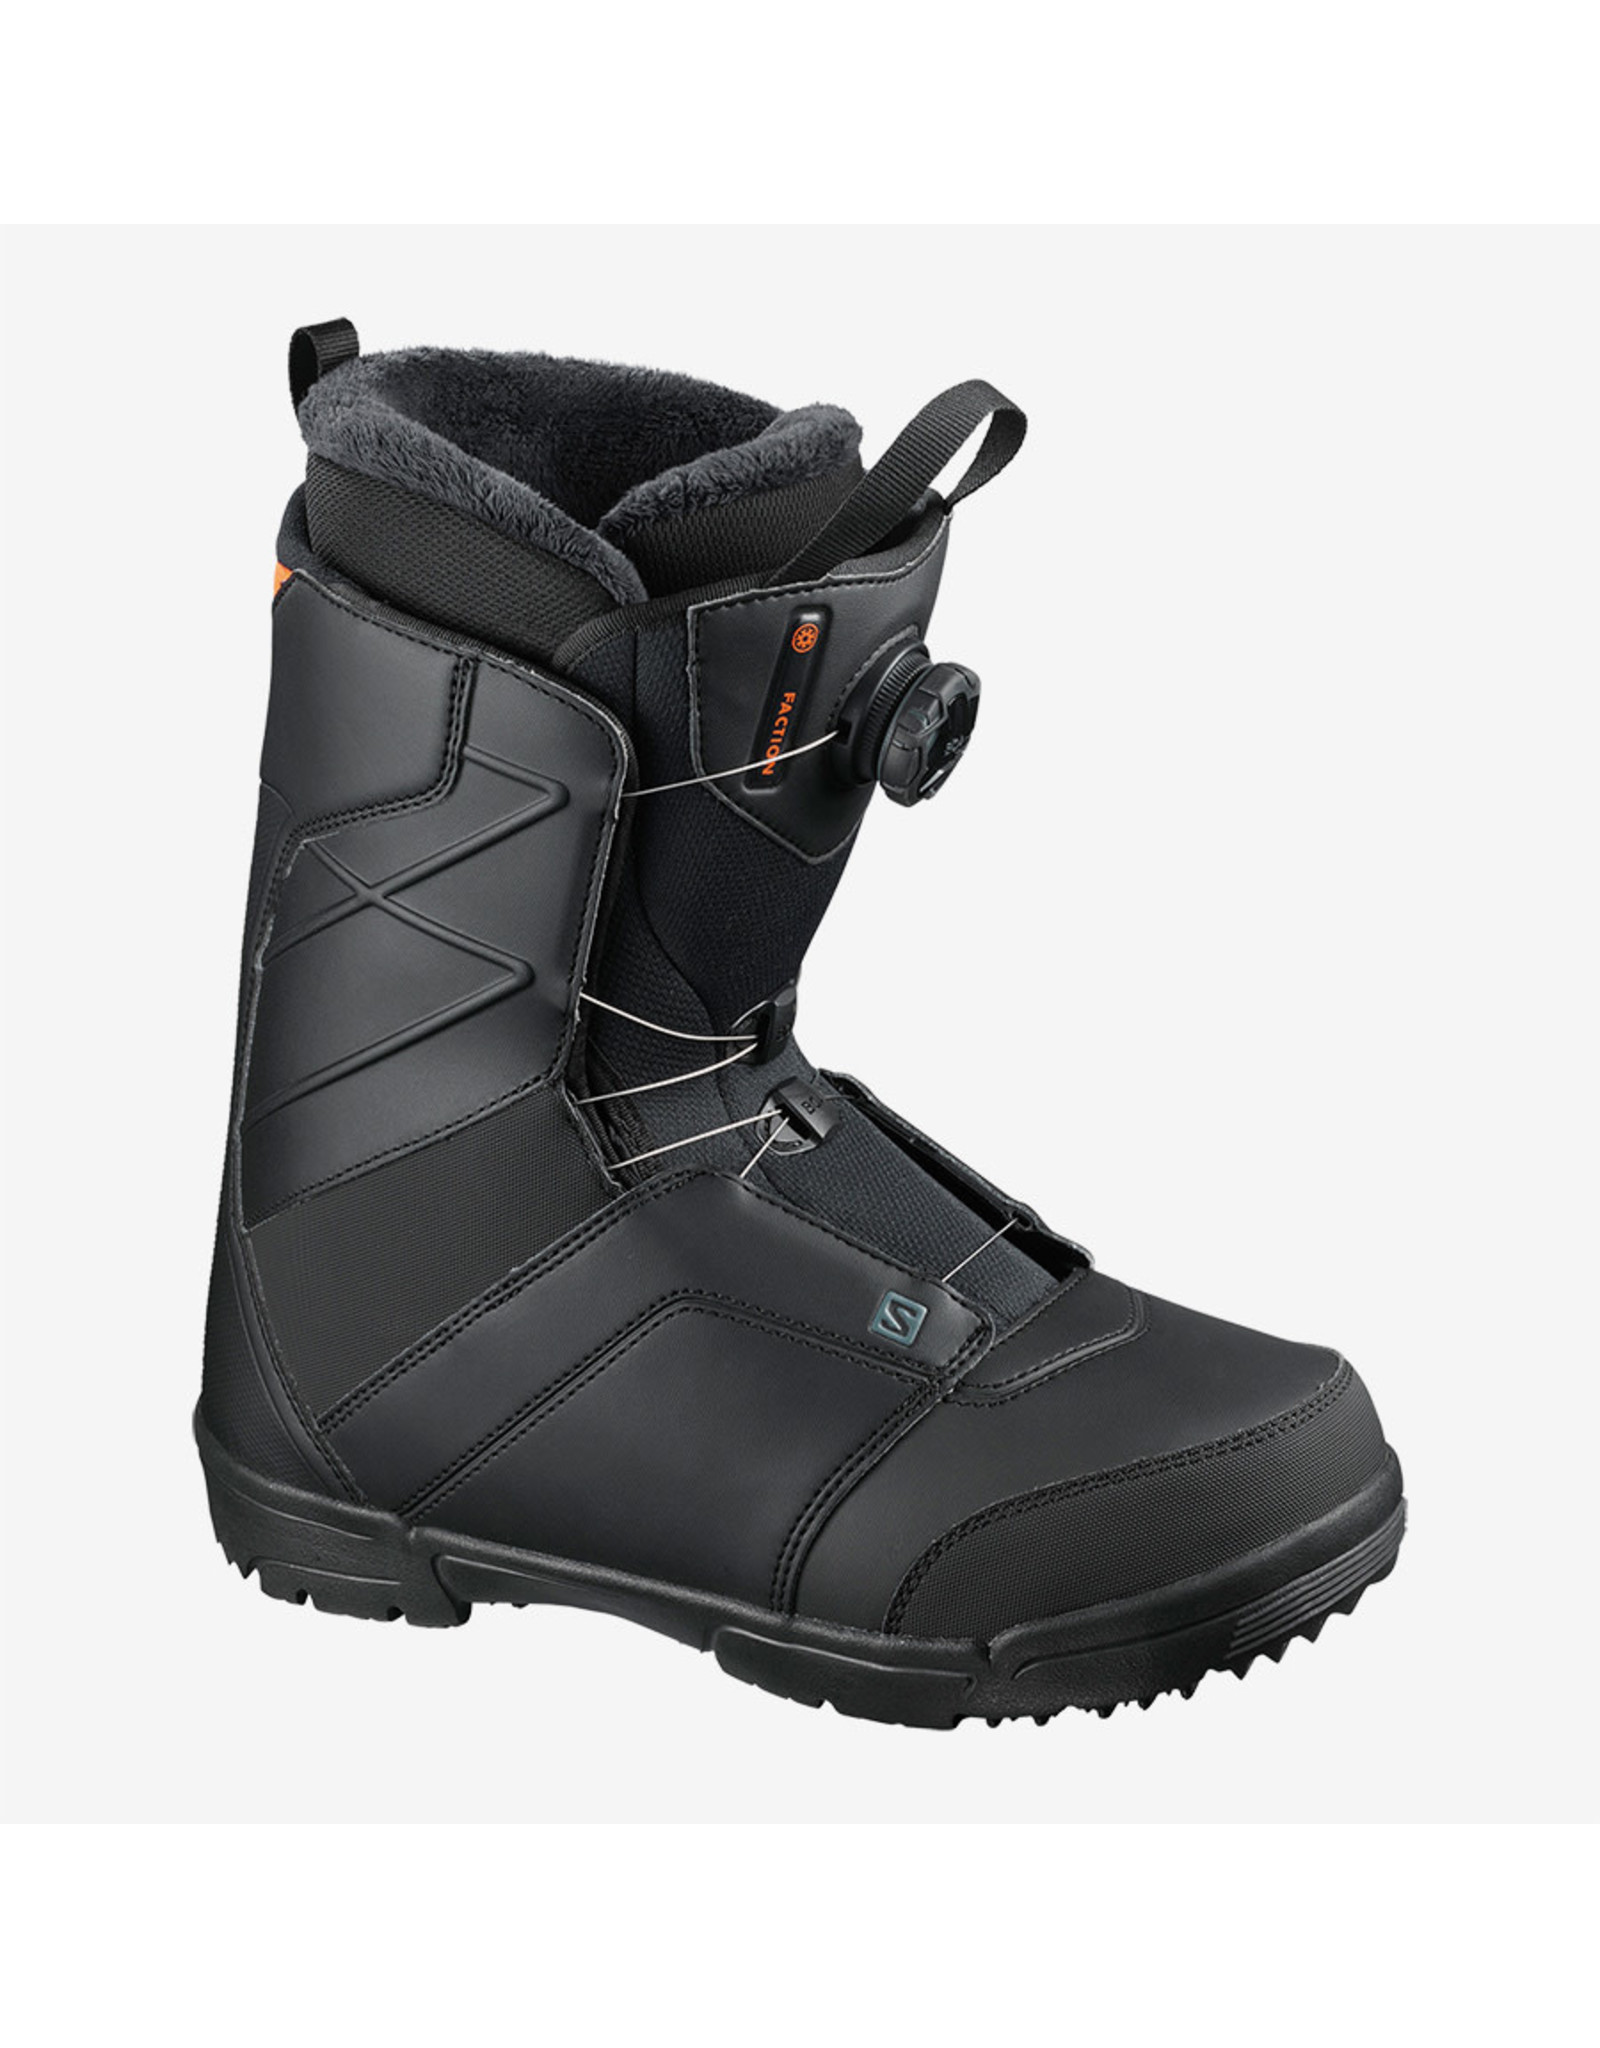 SALOMON SNOWBOARD BOOT SALOMON FACTION BOA